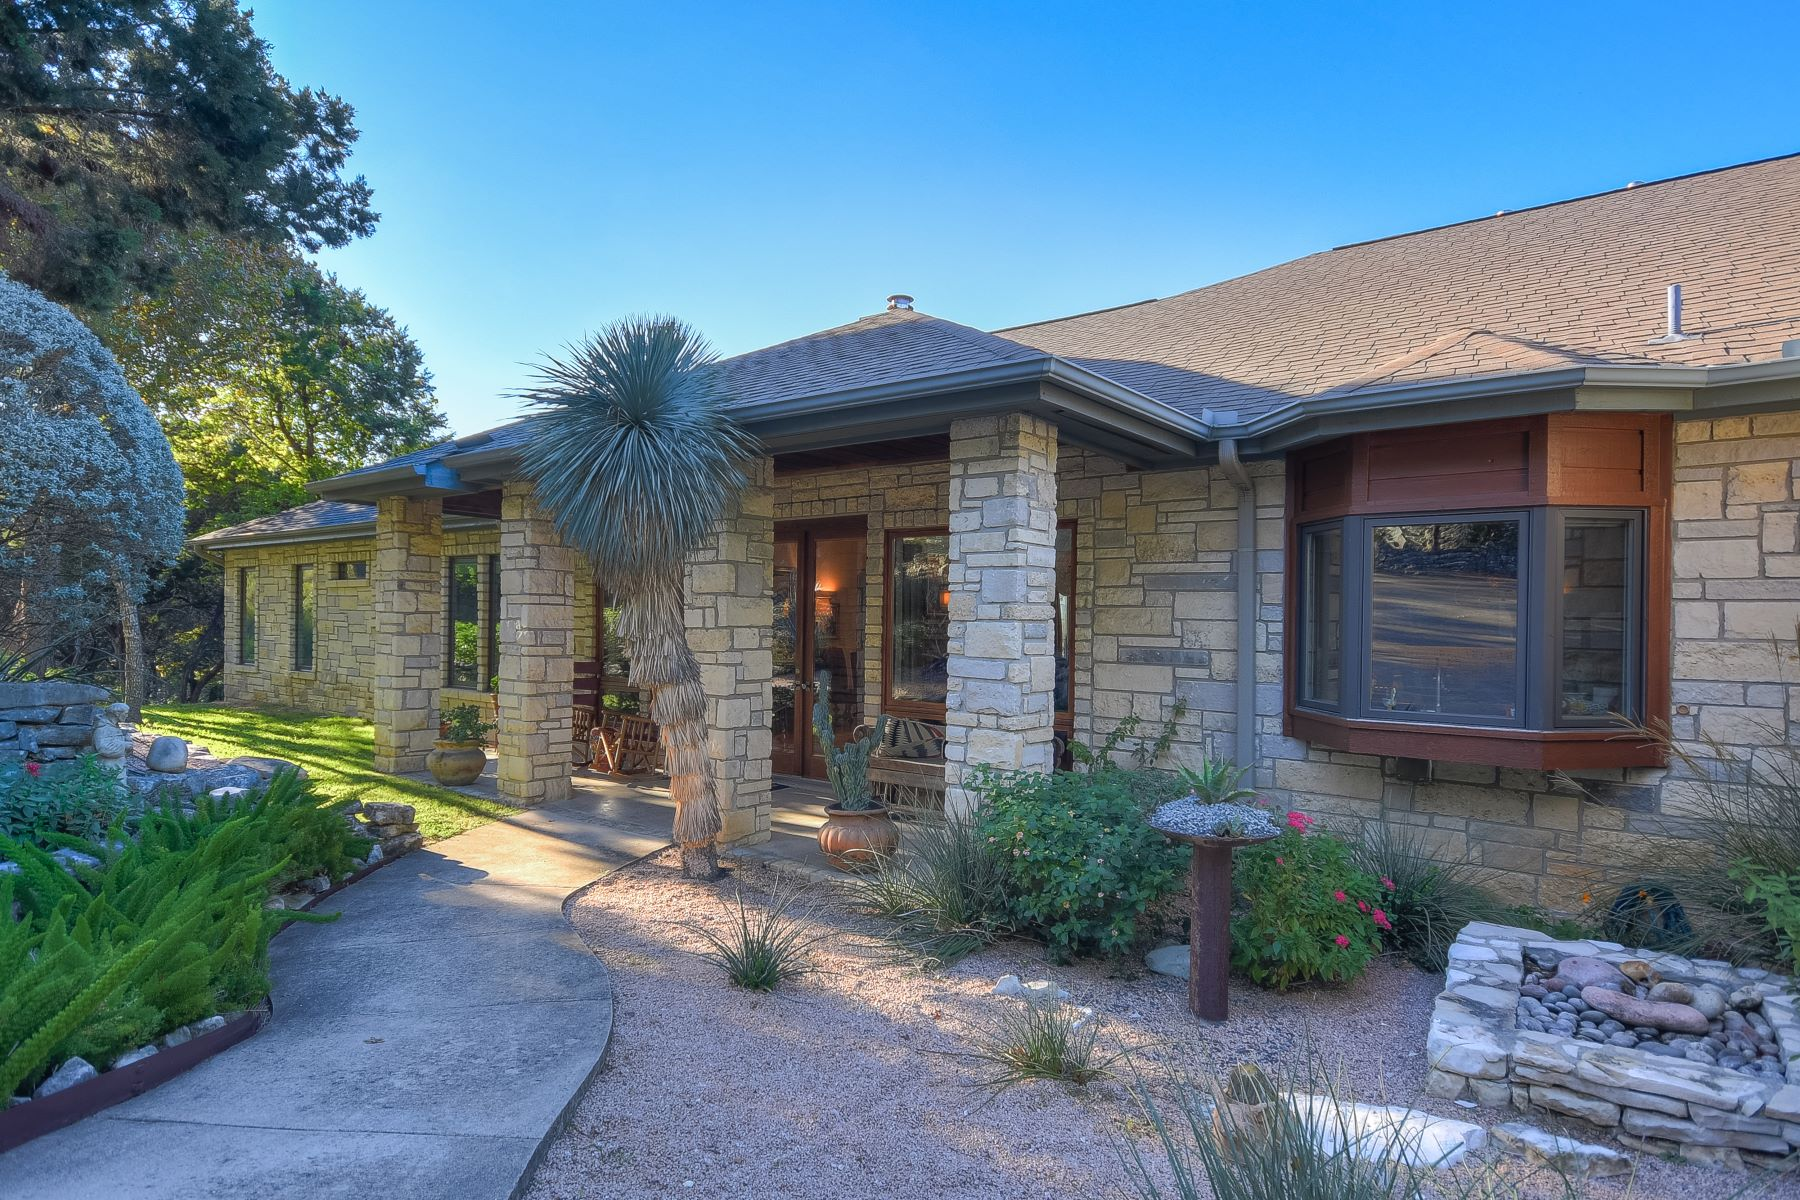 Single Family Home for Sale at Gated Community with Unobstructed Canyon Views 4326 Palladio Drive Austin, Texas 78731 United States